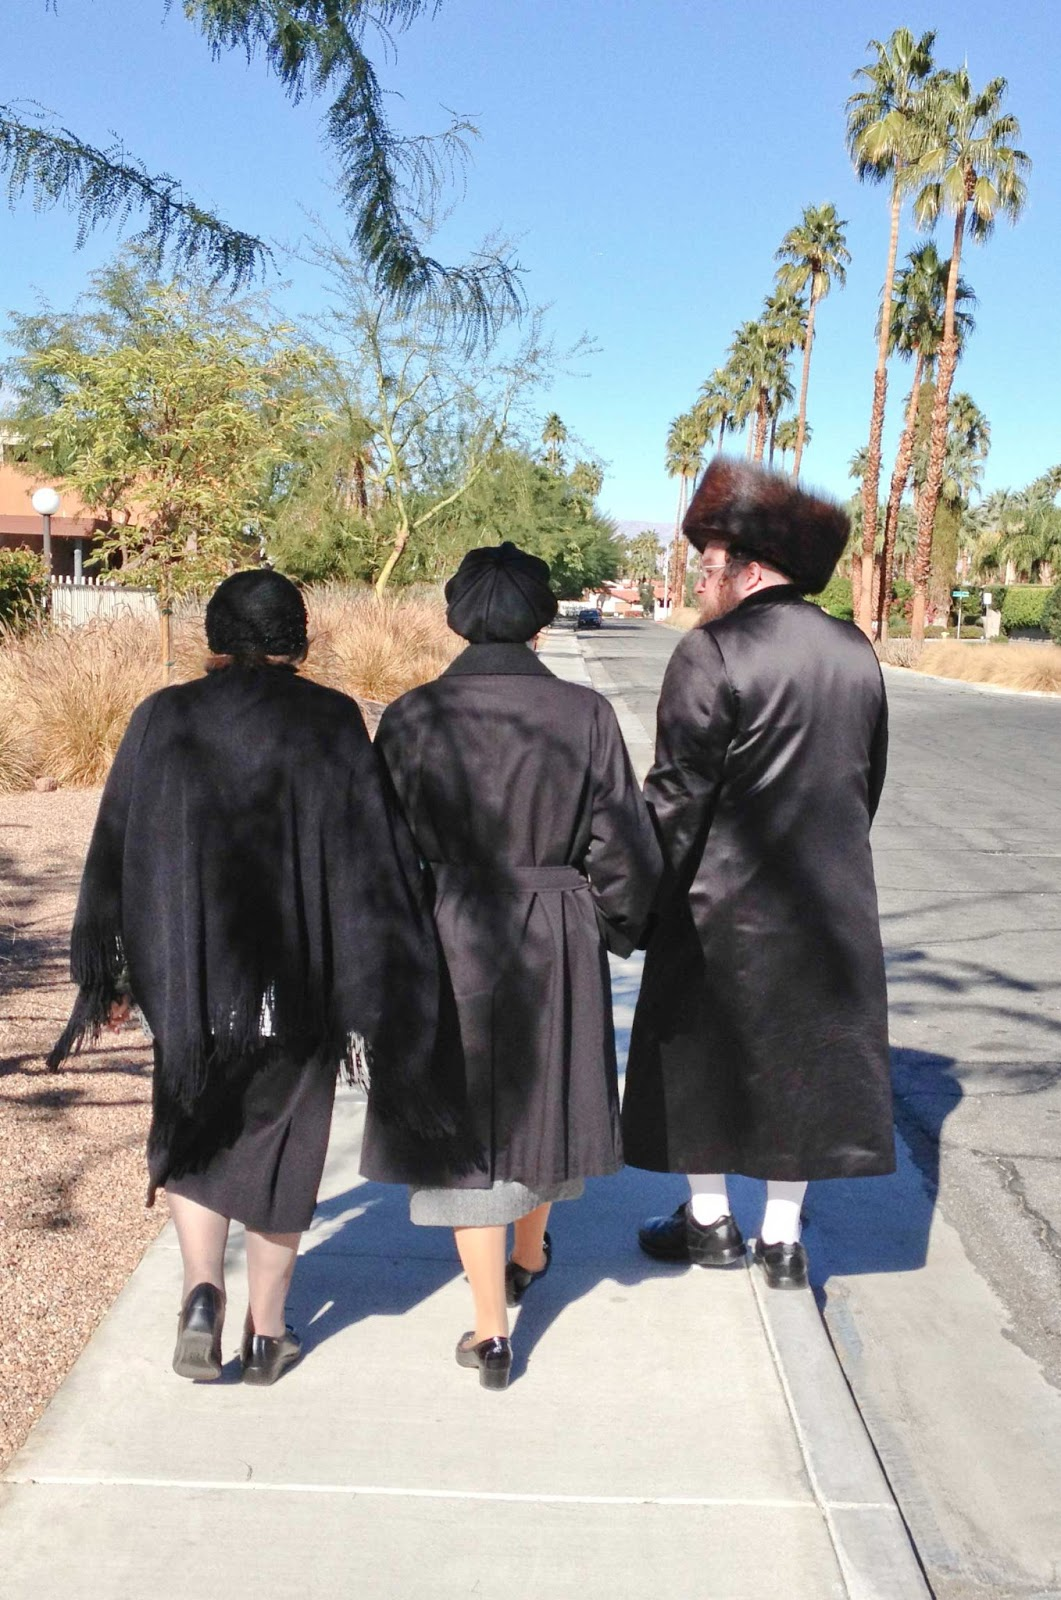 beersheba springs single jewish girls Find meetups and meet people in your local community who share your interests meetups in palm springs palm springs lesbian & lgbtq women's events.